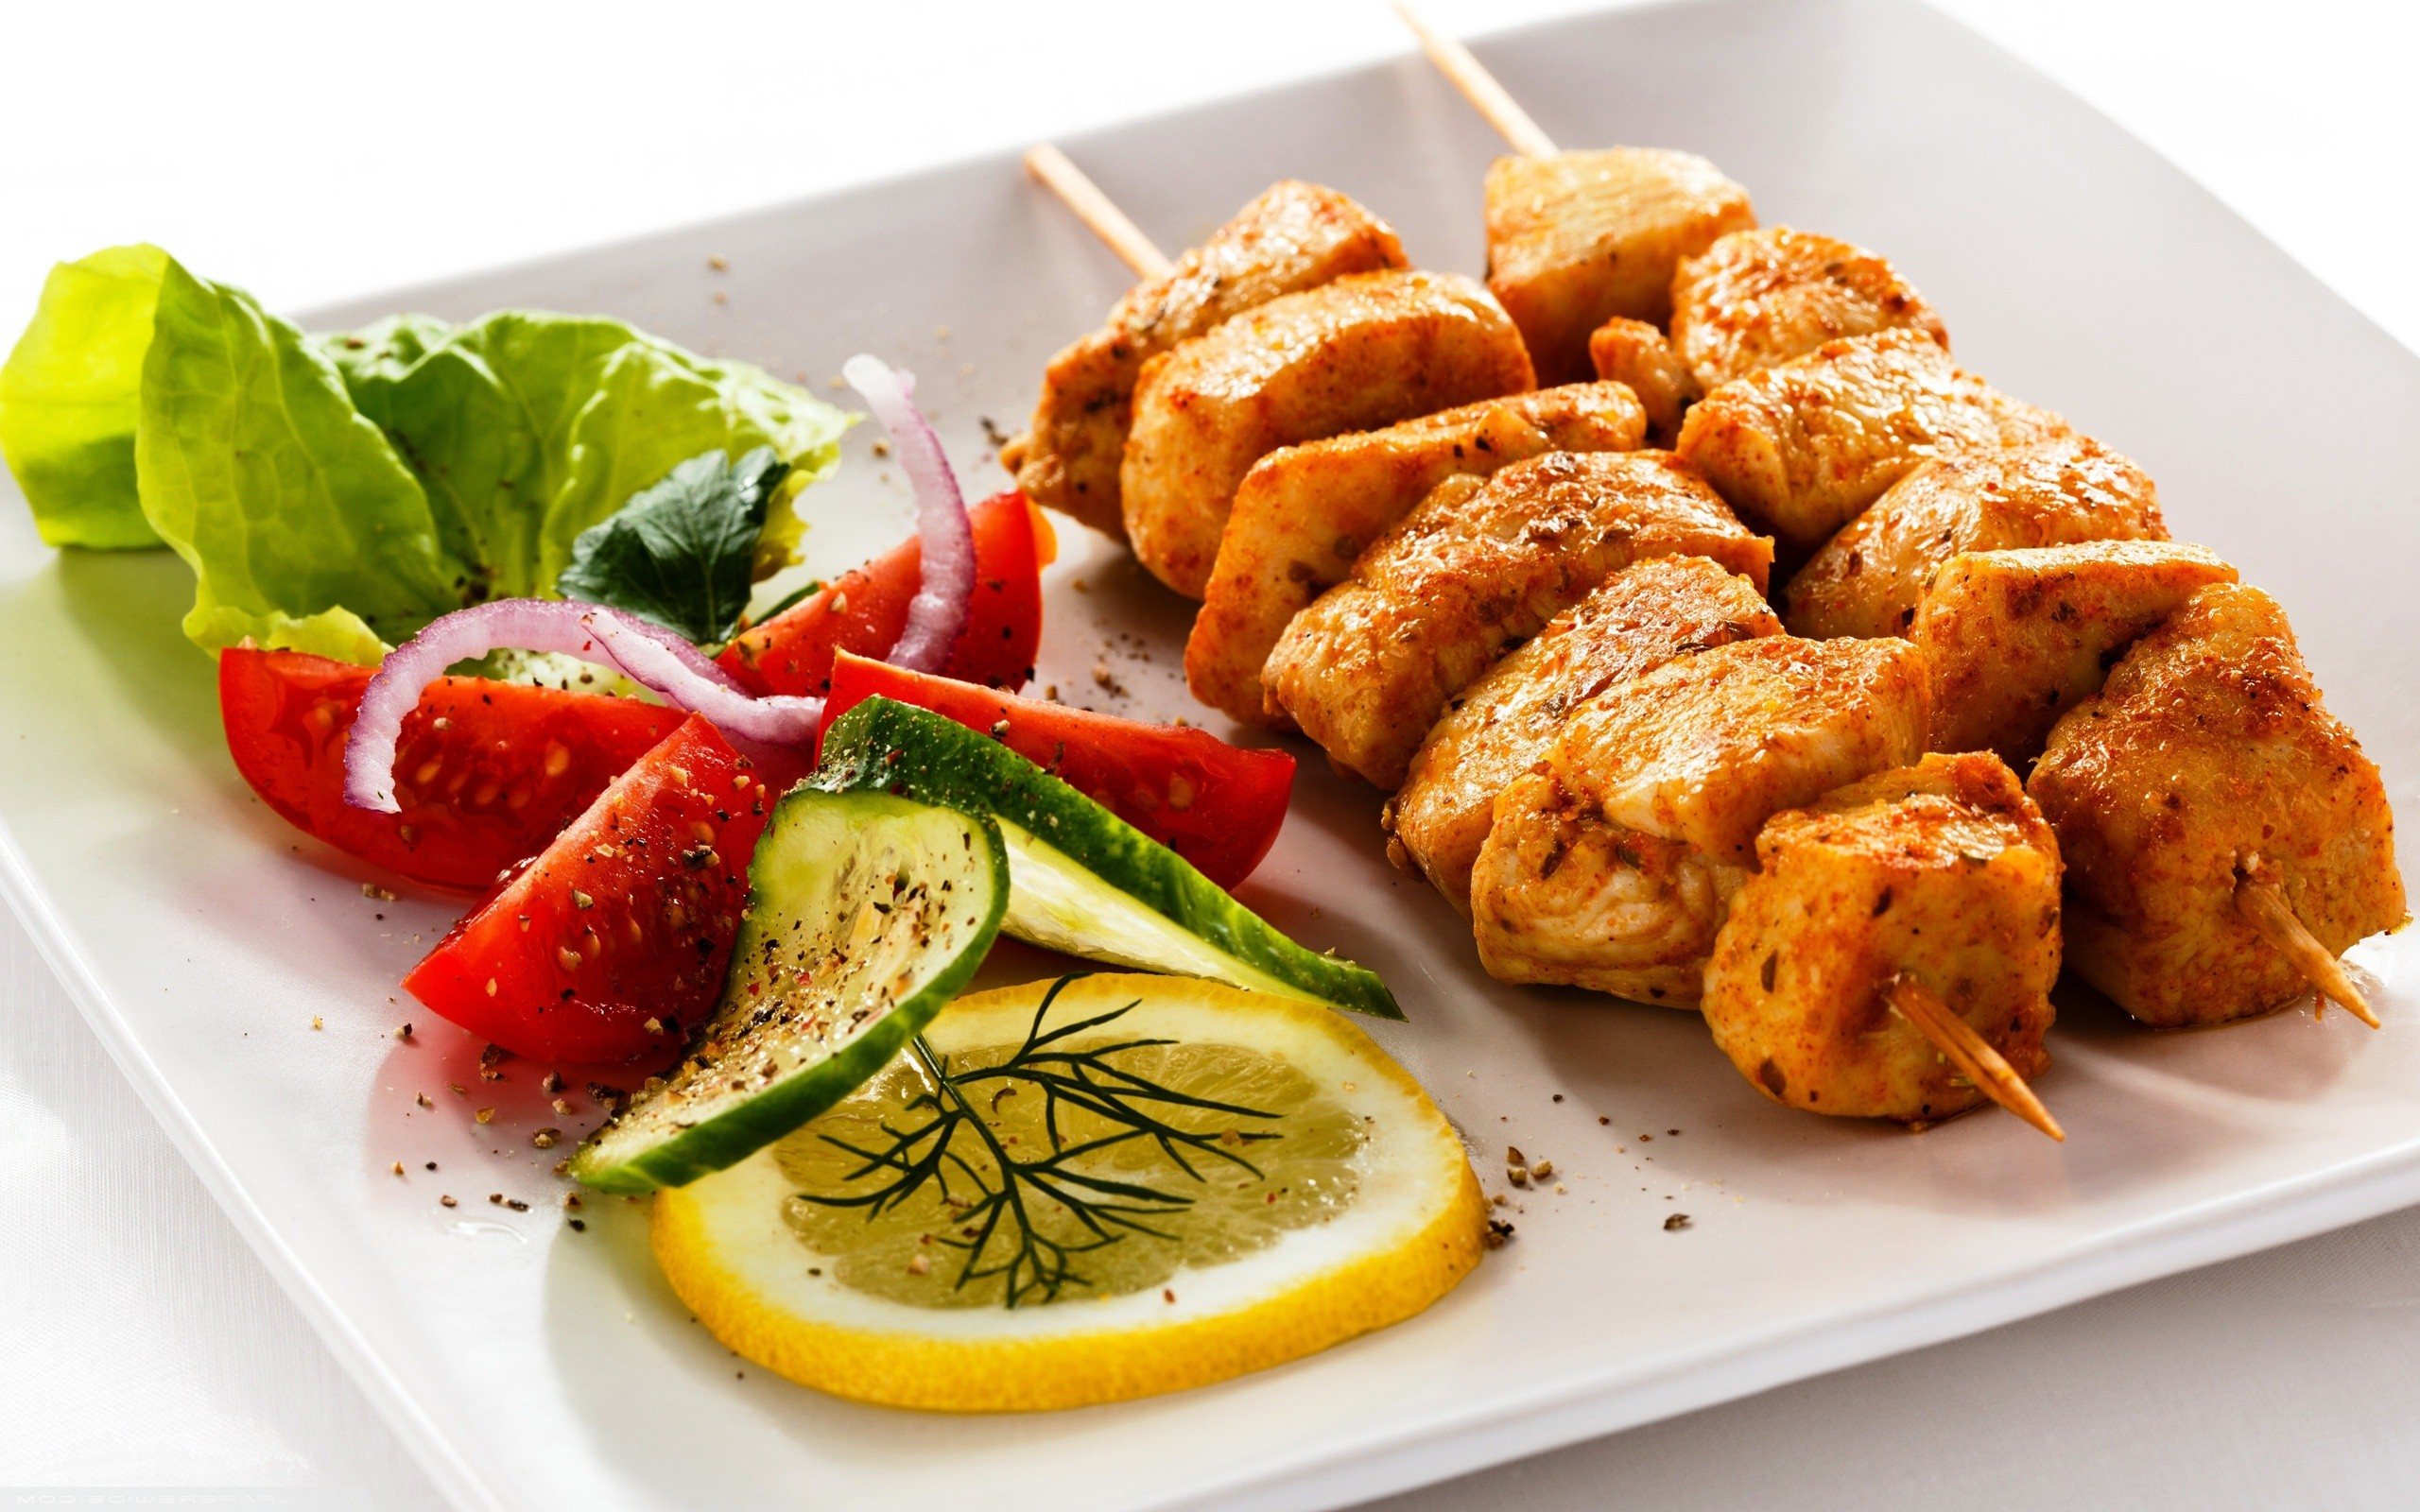 Order Your Tasty Food Recipes Online